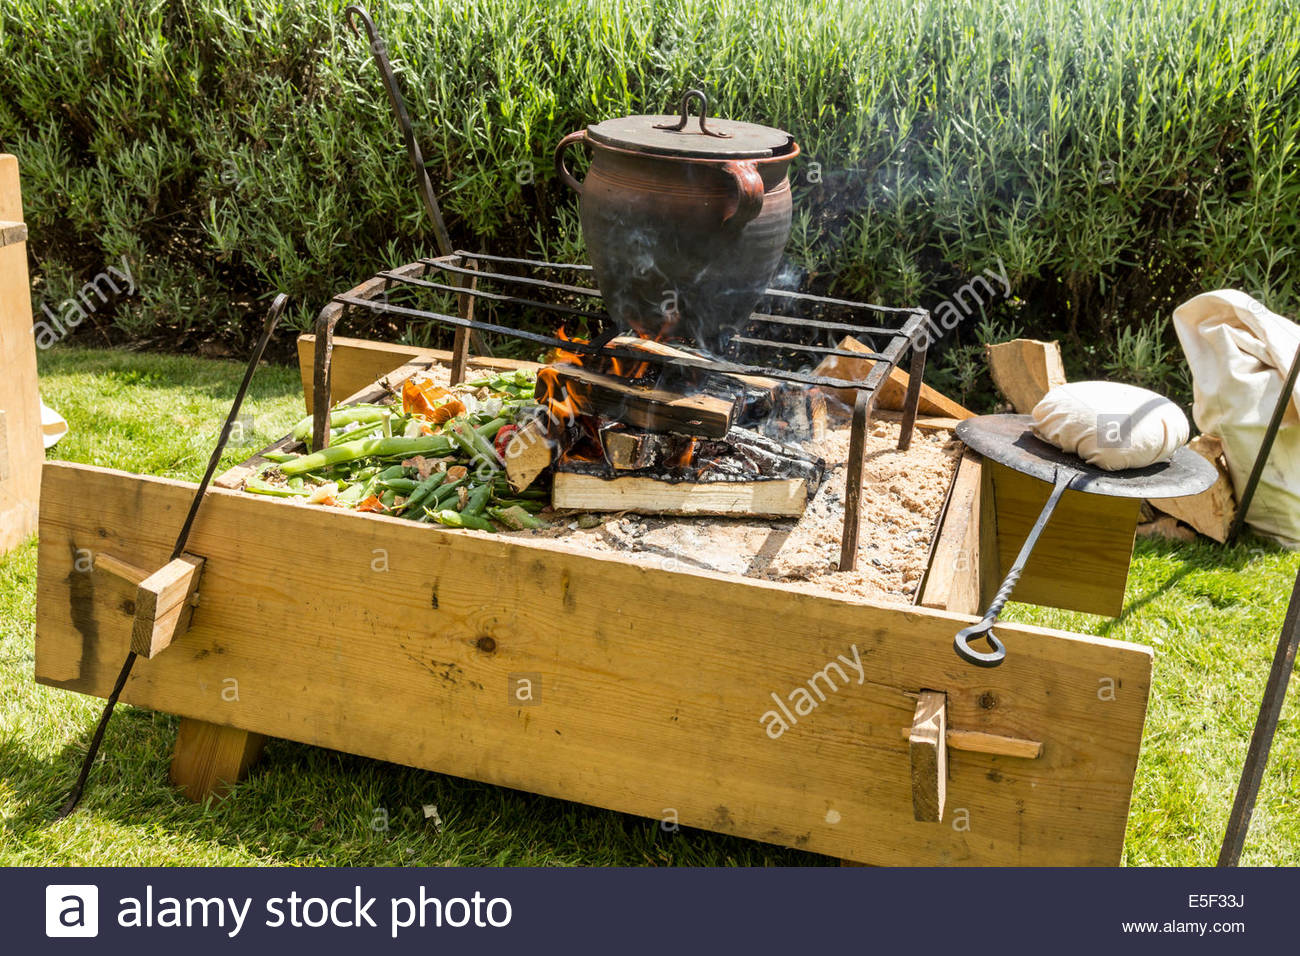 Cooking pot on an open camp fire - Stock Image